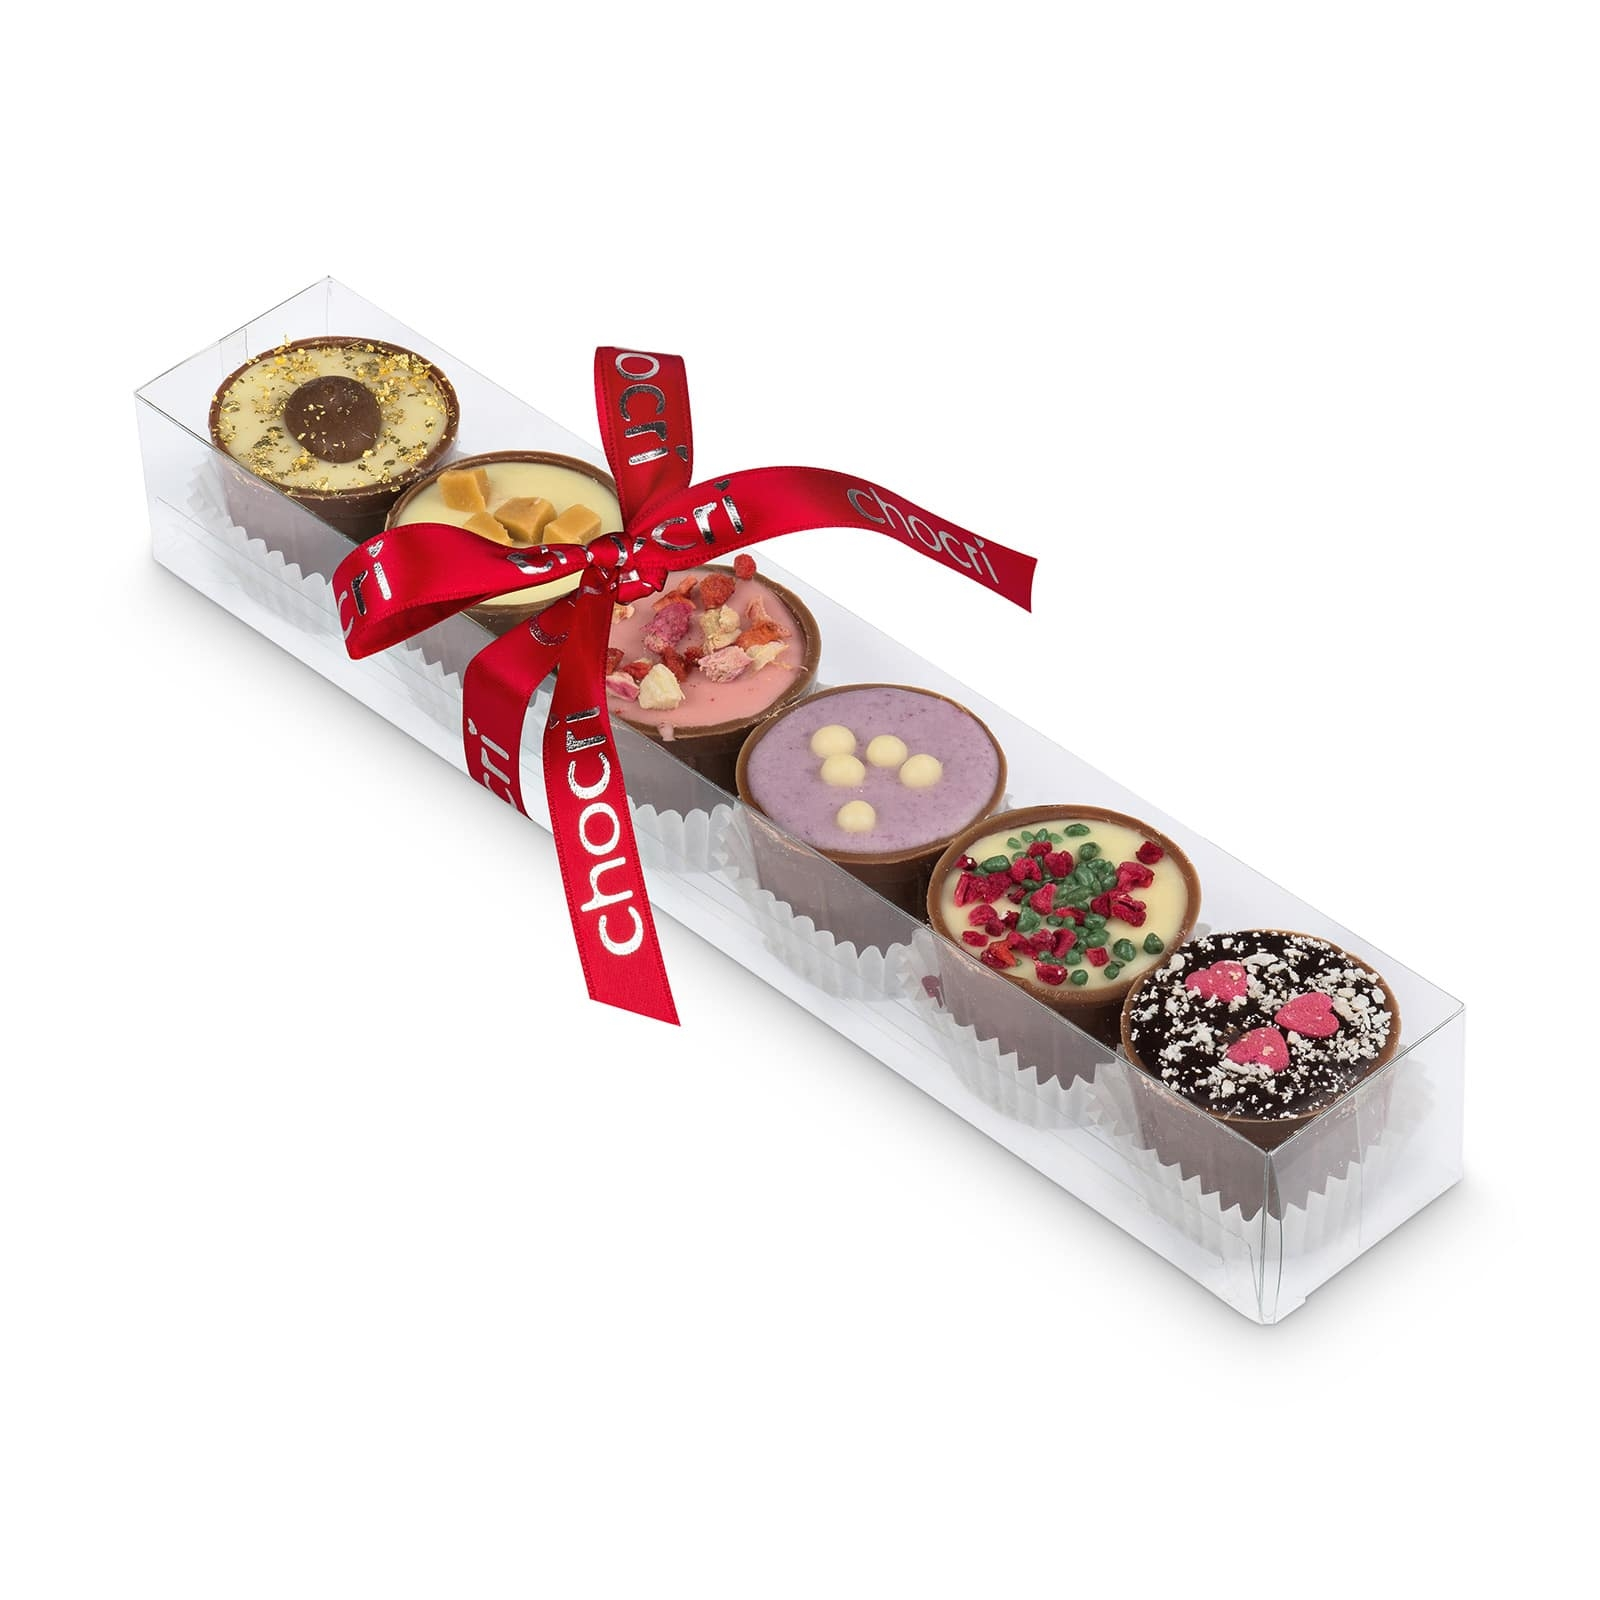 Köstlichsüsses - chocri Everyday's Darling Cup Pralinenstange Sale - Onlineshop Chocri